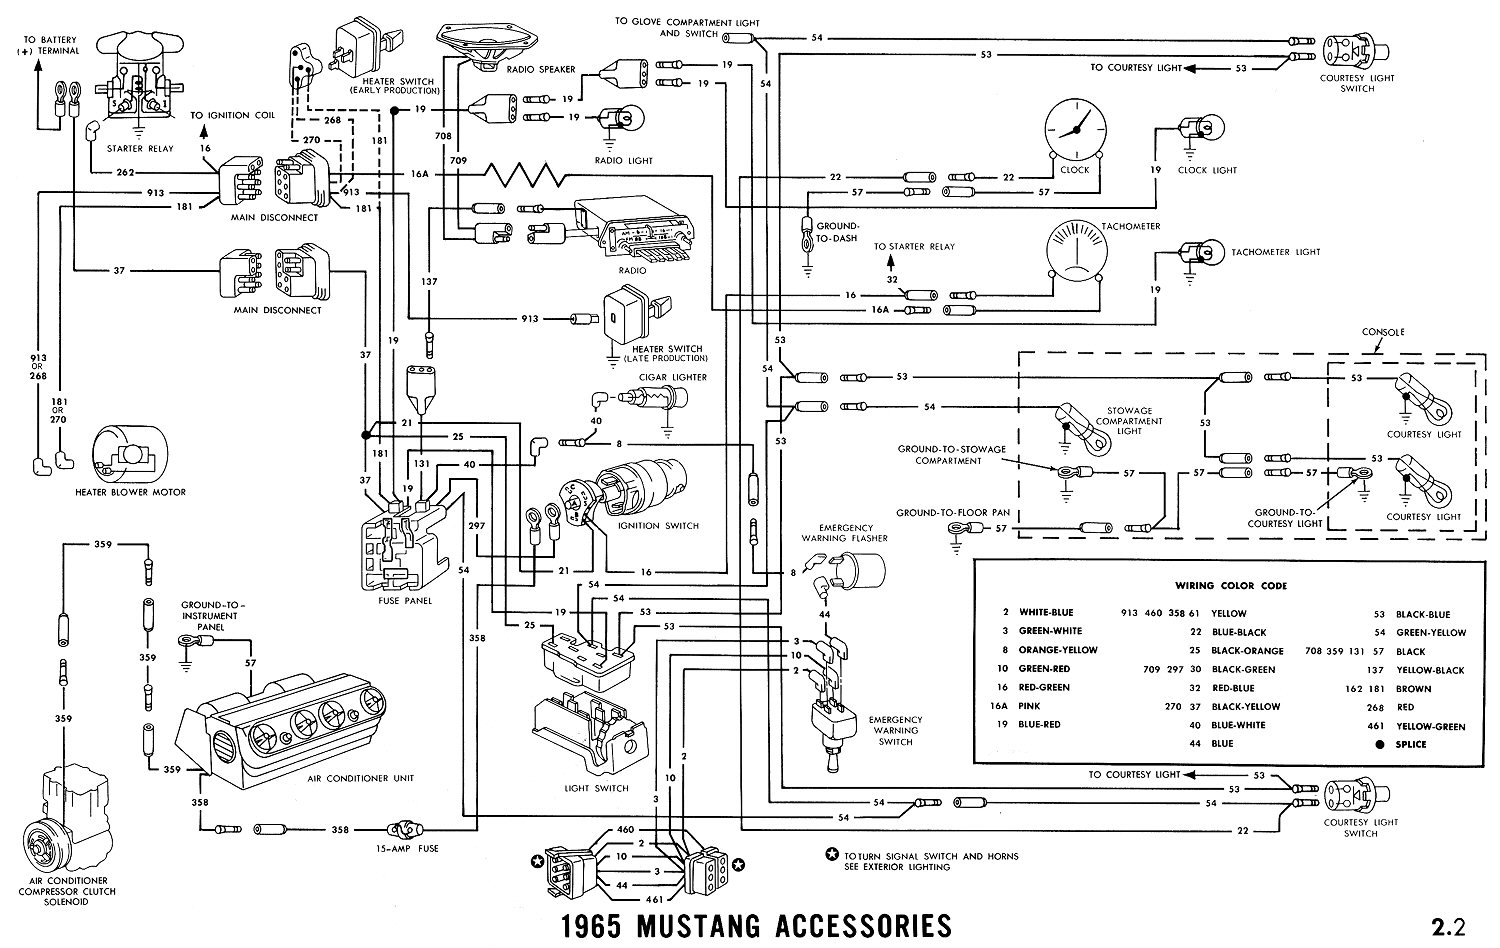 66 mustang ignition wiring diagram emergency key switch 1965 diagrams average joe restoration air conditioner